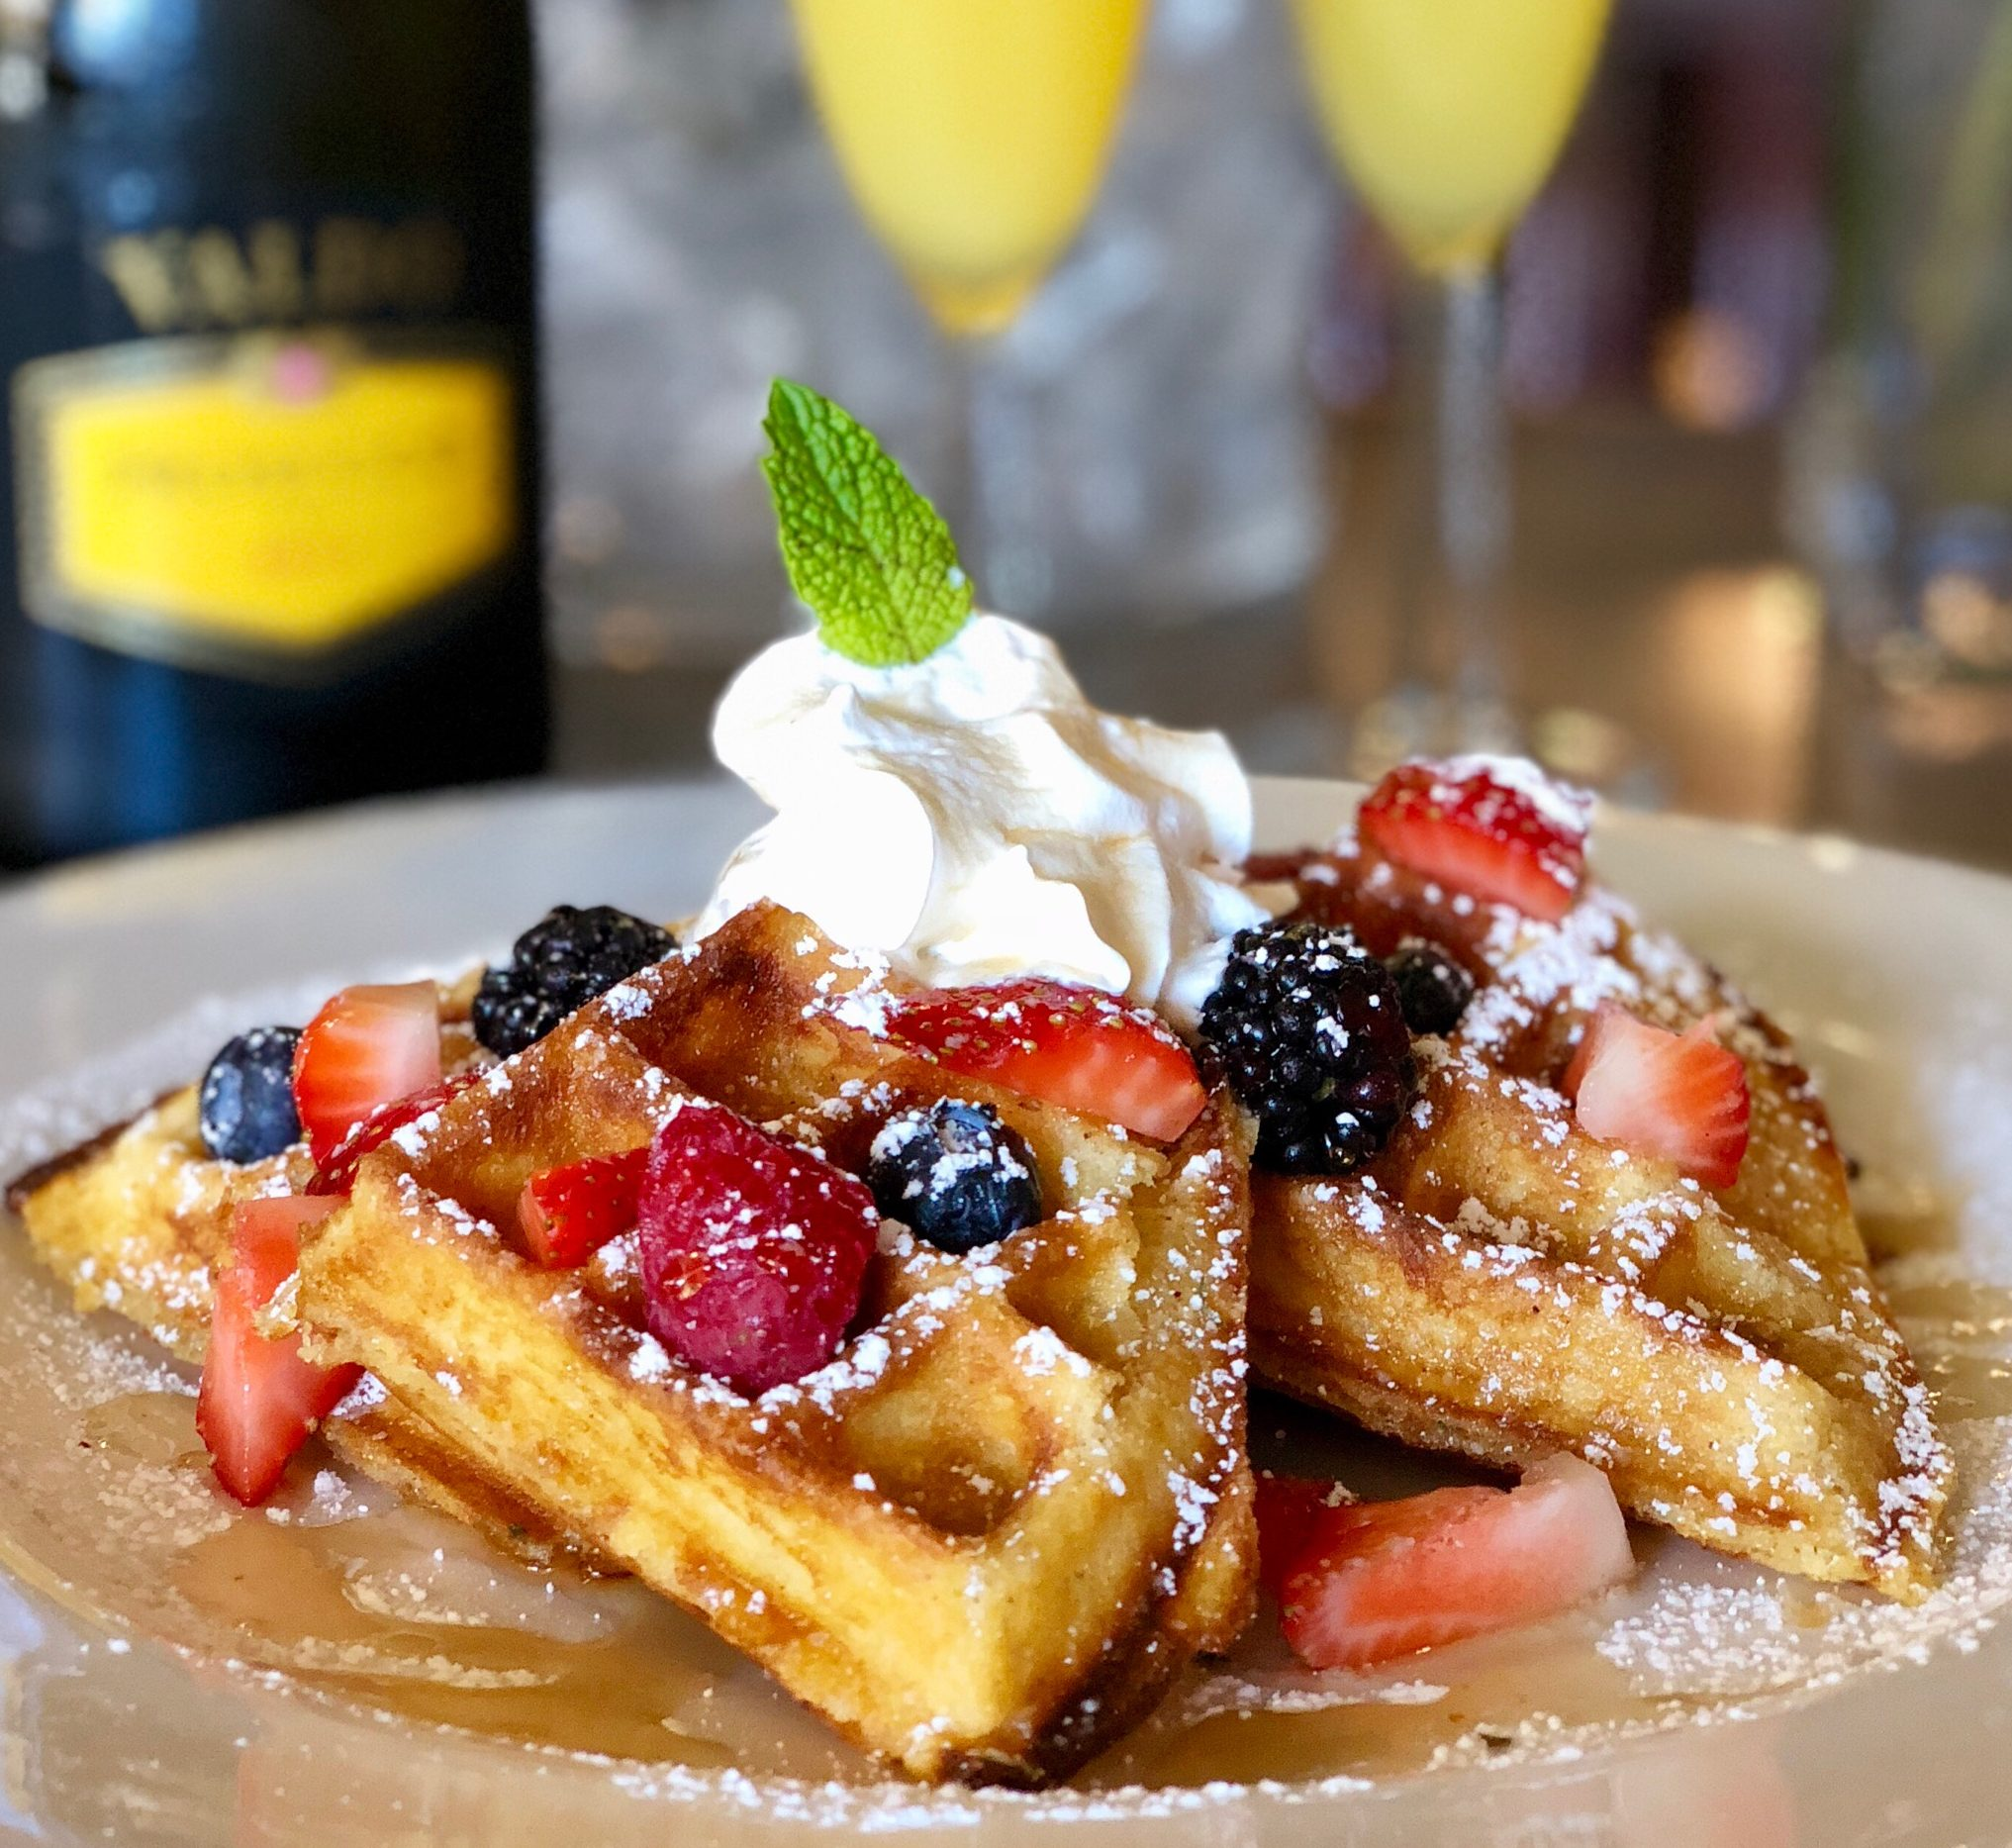 Brunch Belgium Wffles with fresh fruit, whipped cream, and mimosas